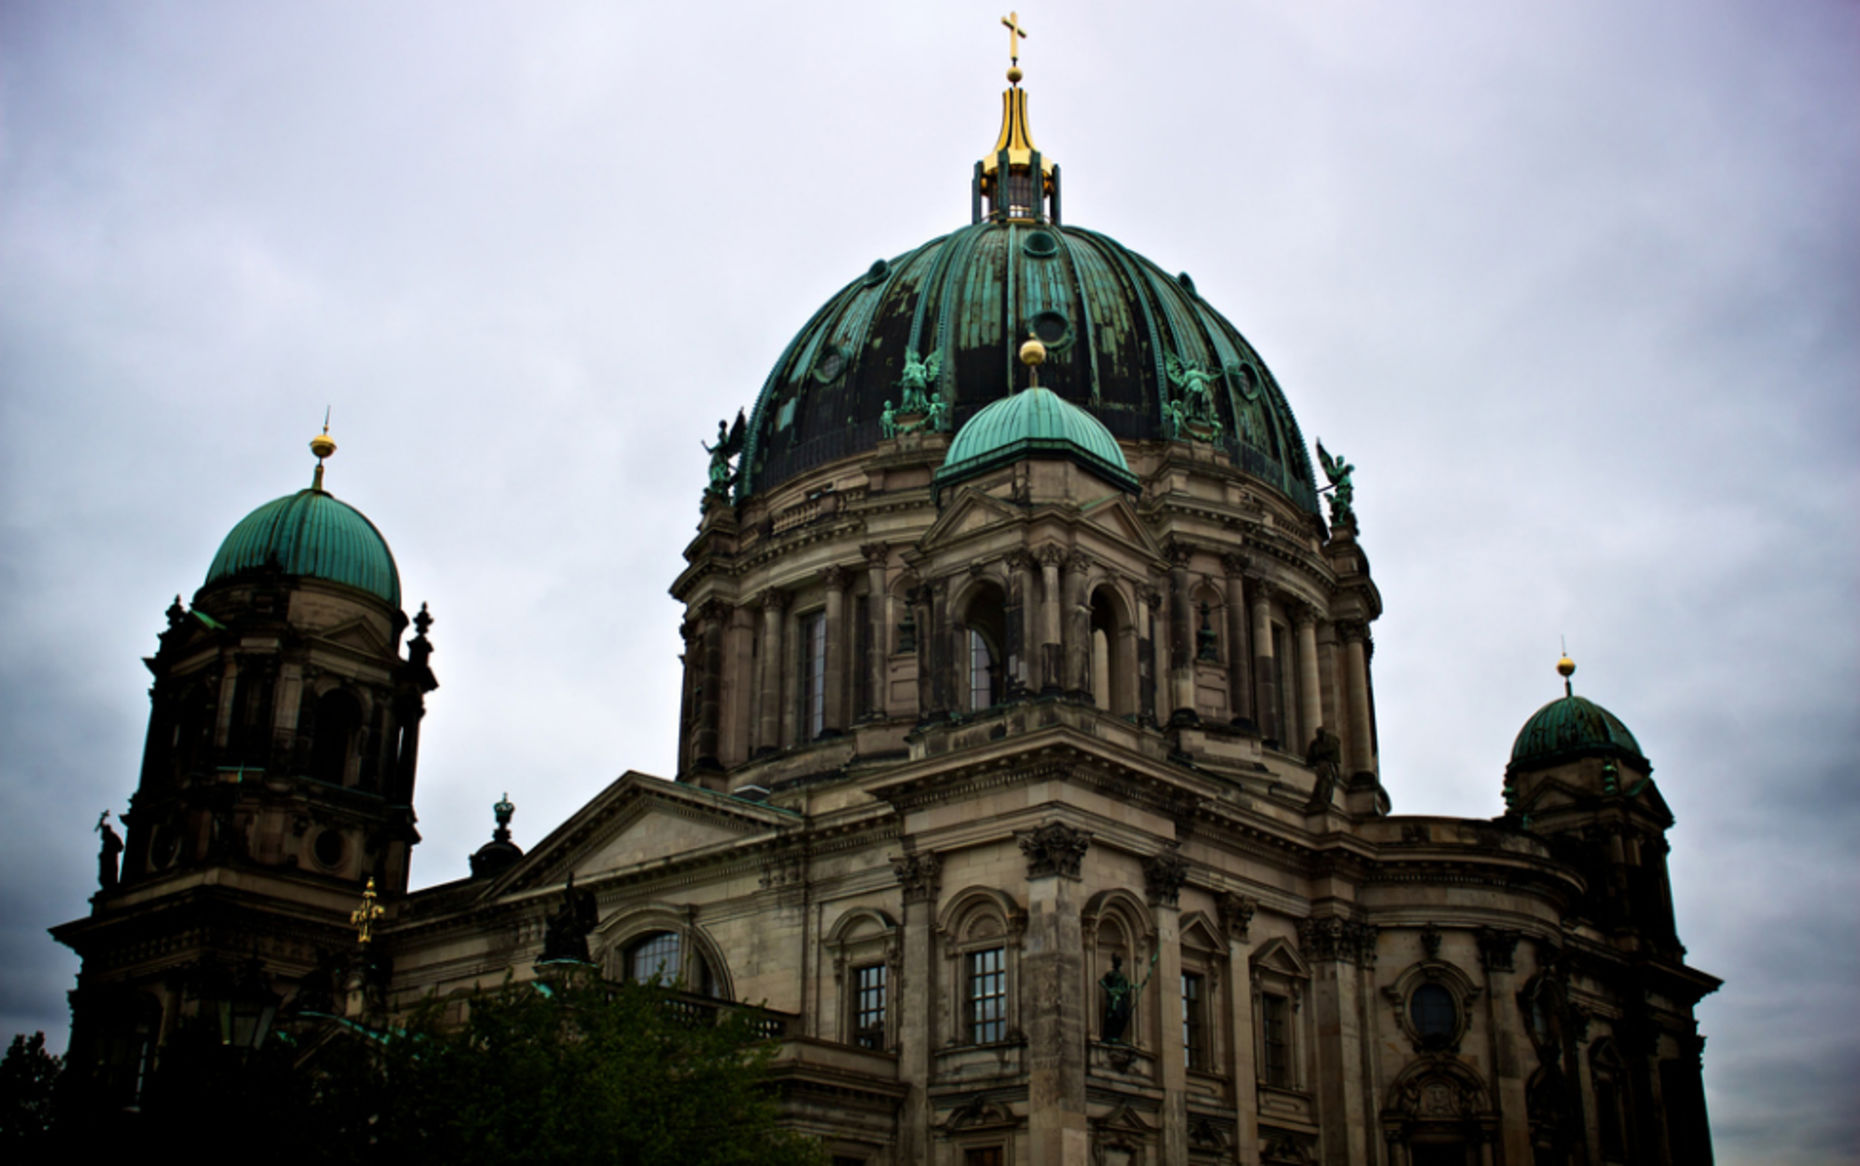 Berlin Cathedral. Credit: Philippe Amiot via Flickr